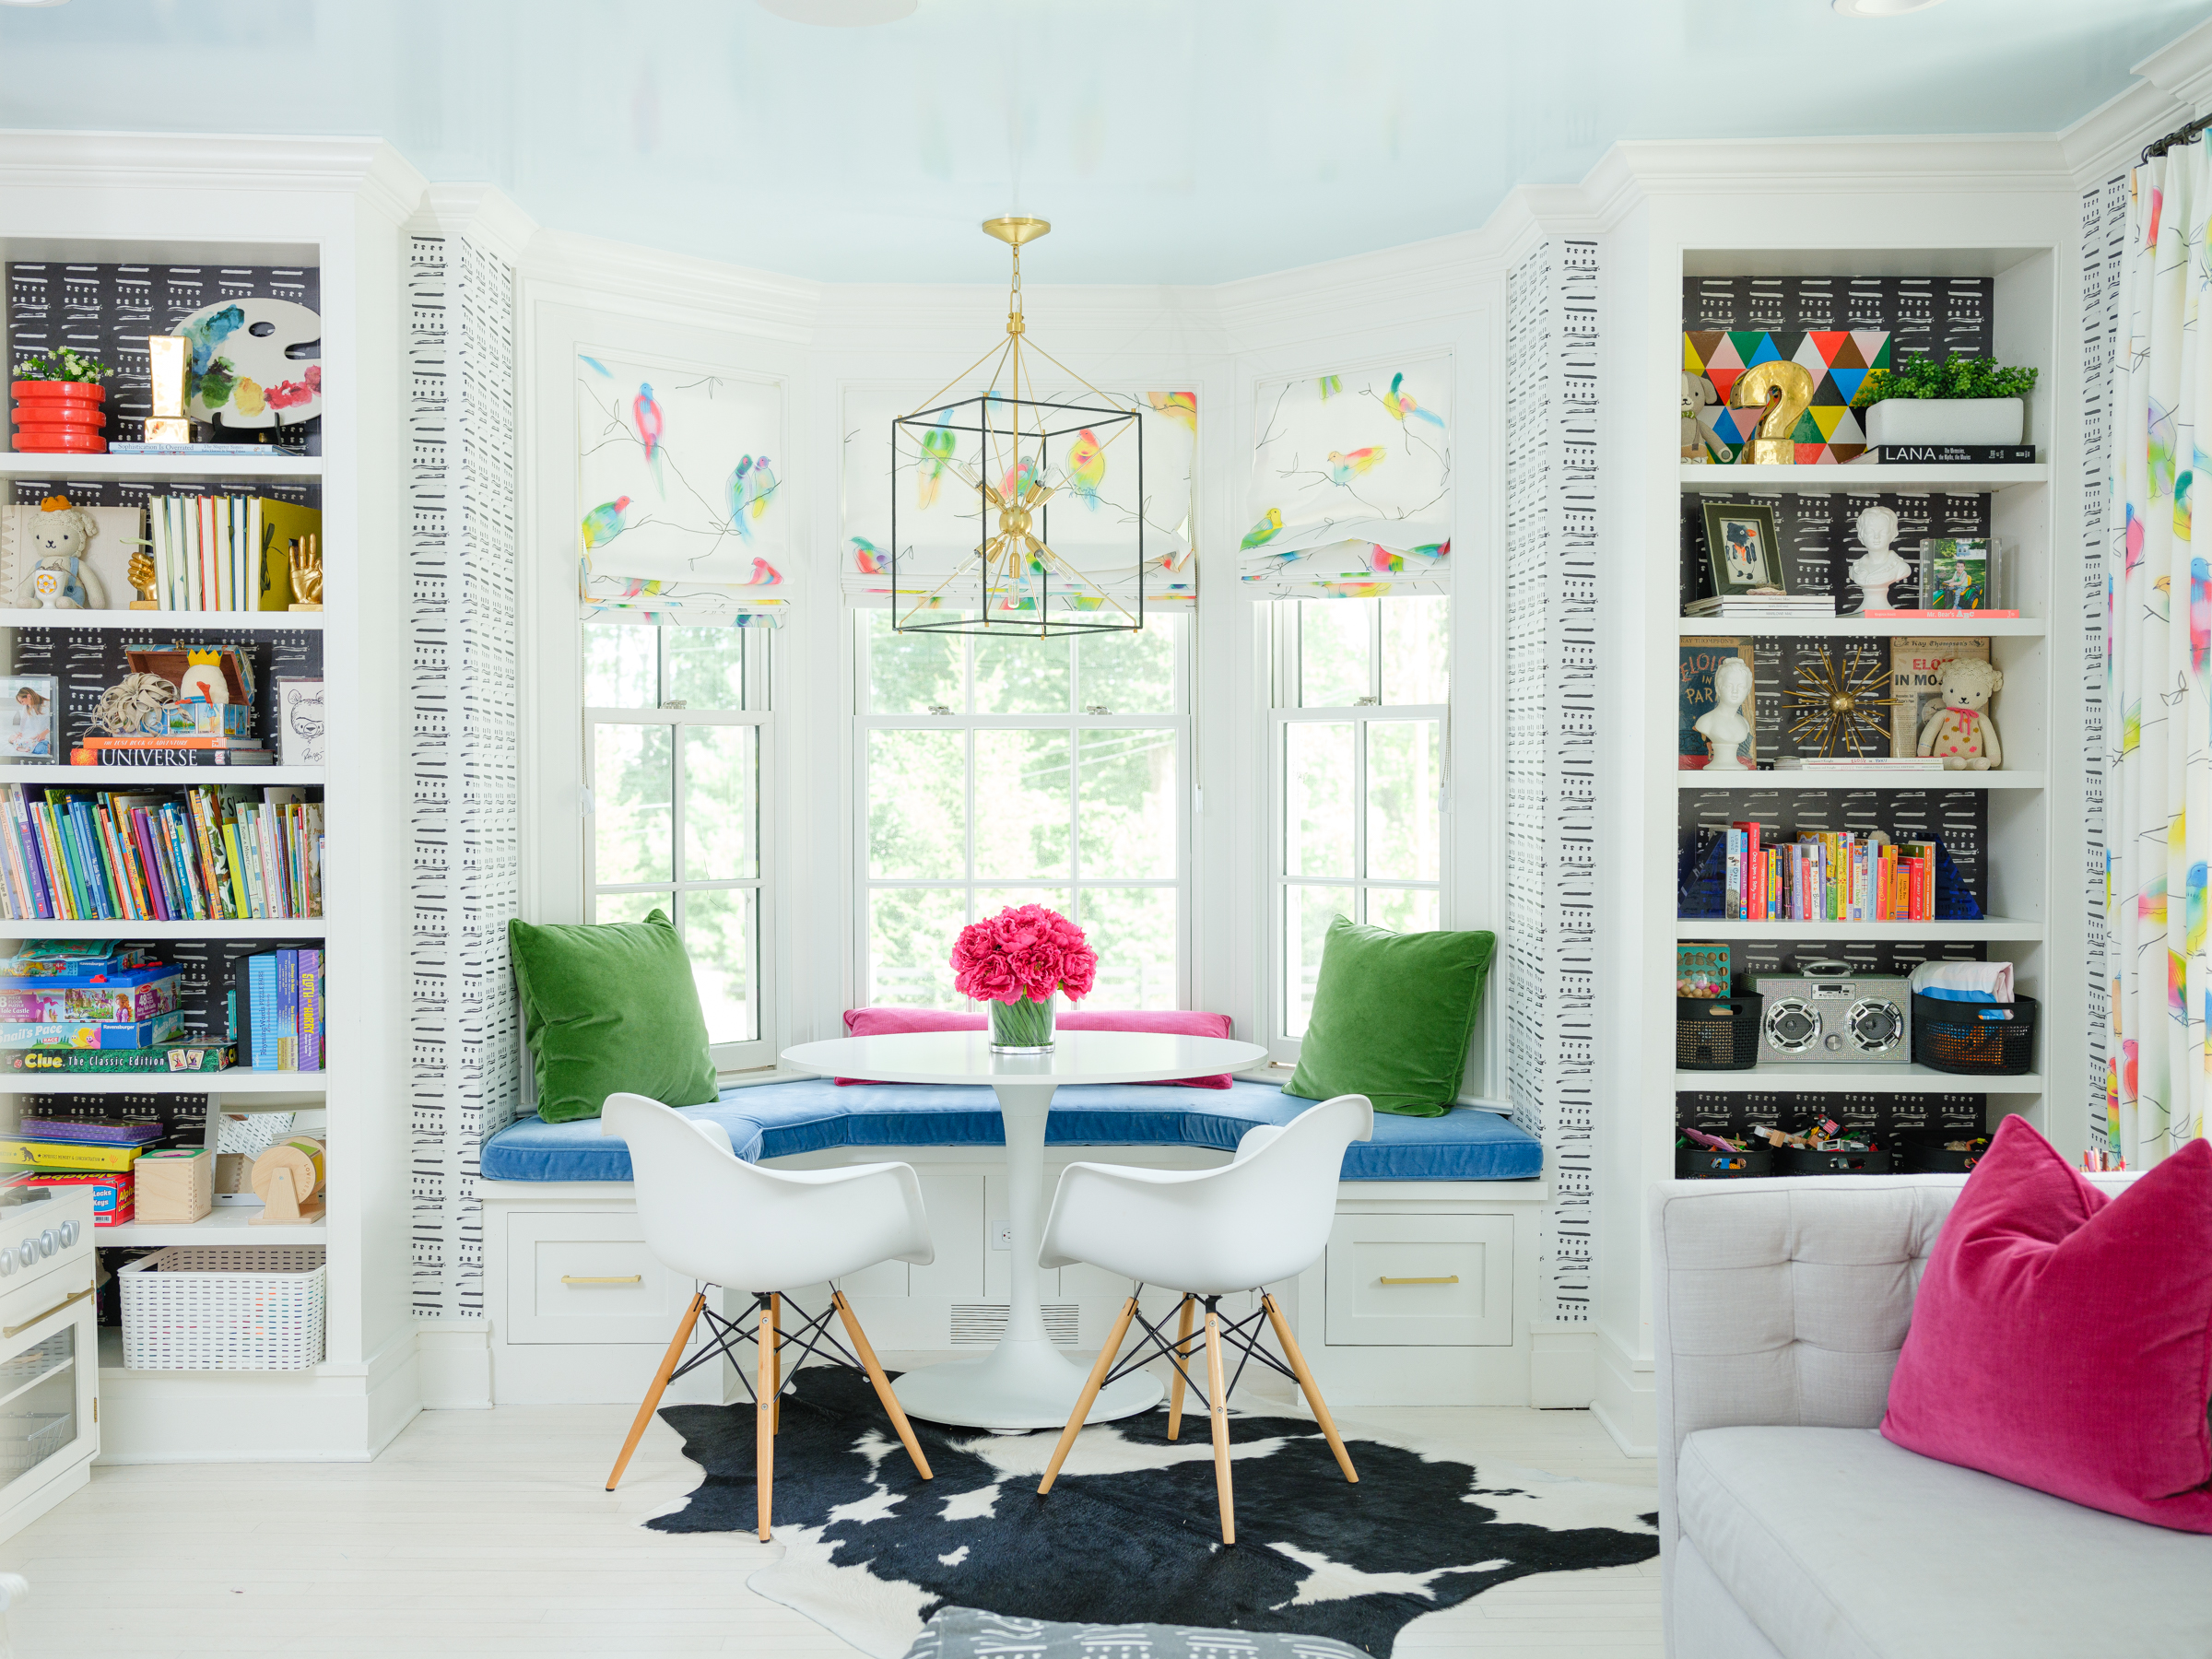 Eva Amurri shares her newly reorganized playroom